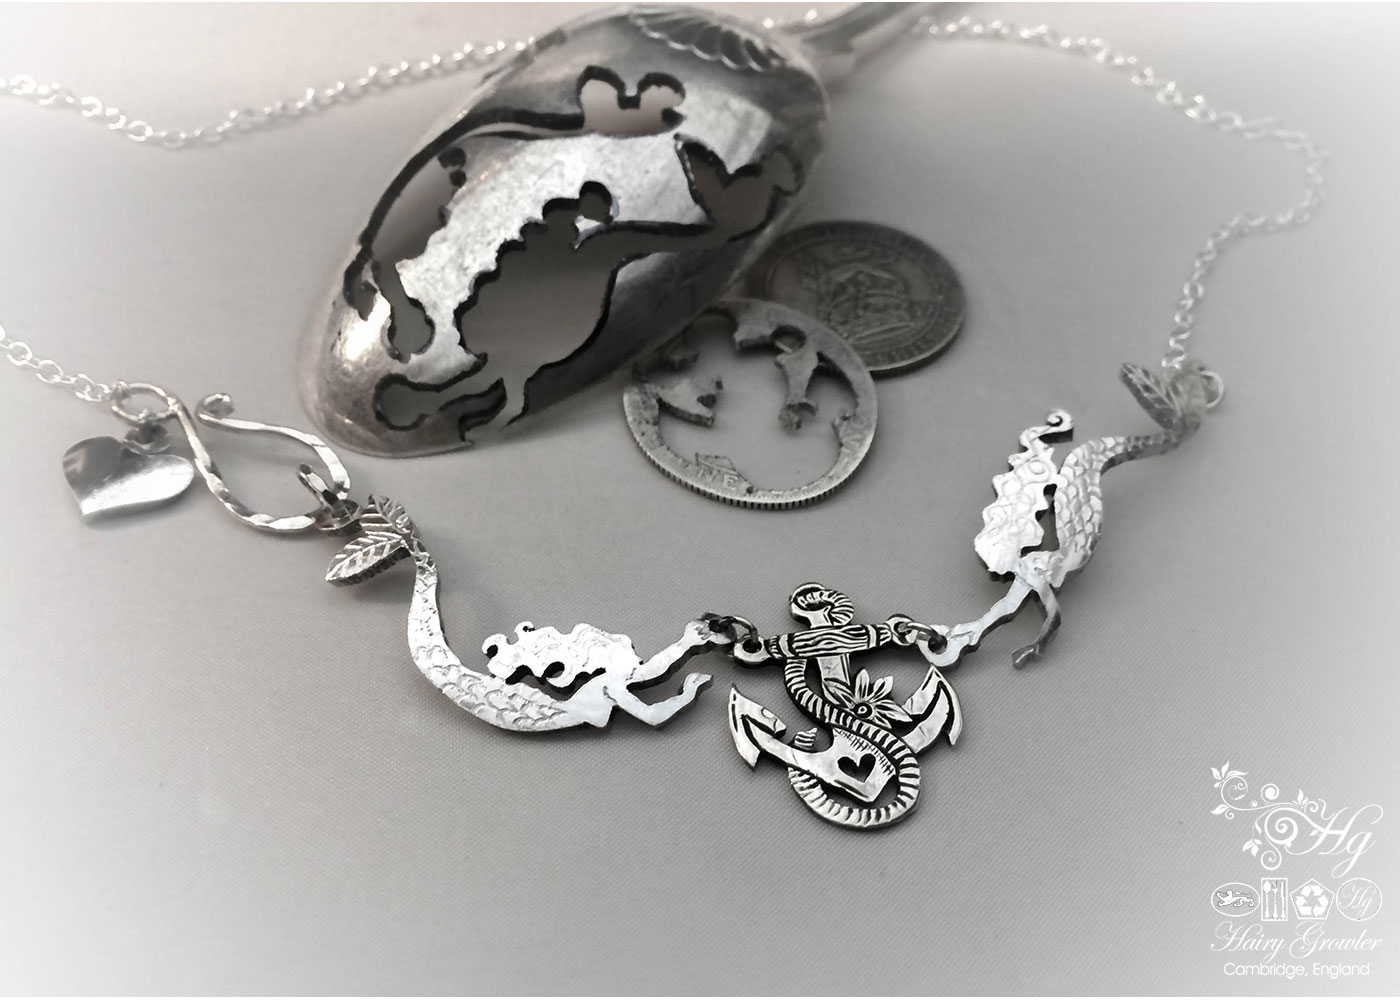 Hand made and upcycled silver coin mermaid necklace made in landlocked Cambridge, UK